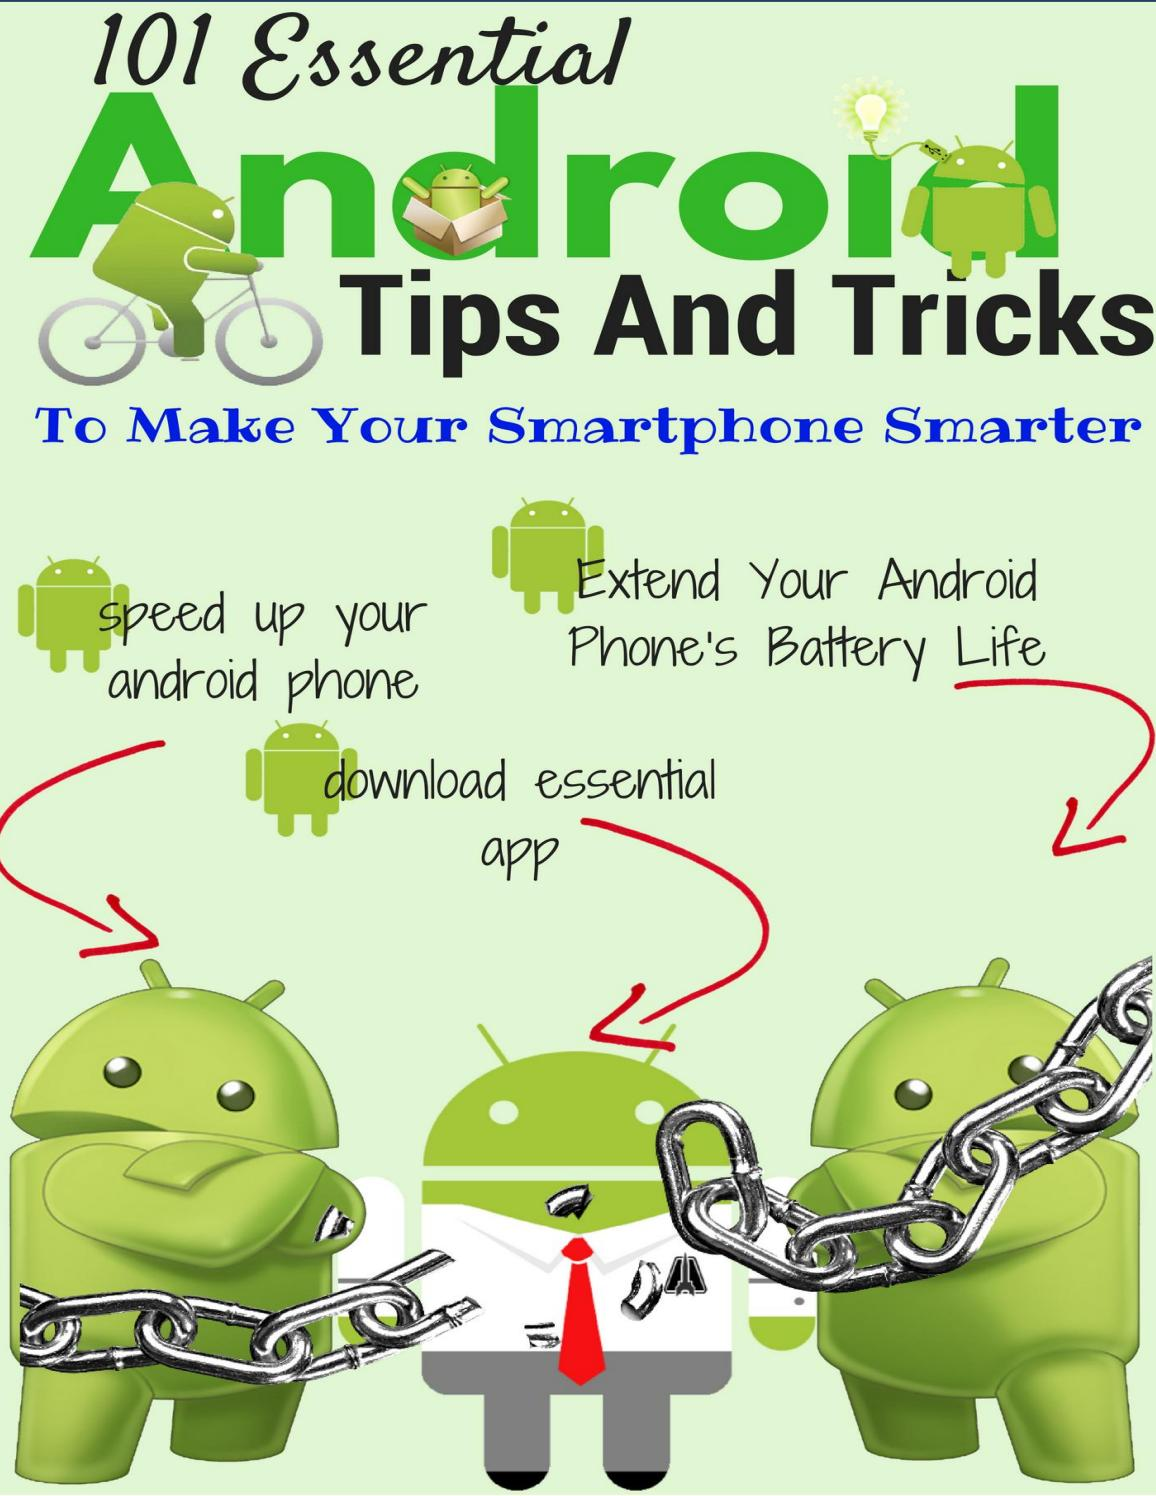 101 essential android tips and tricks to make your smartphone Smarter by  Android Data Recovery - issuu